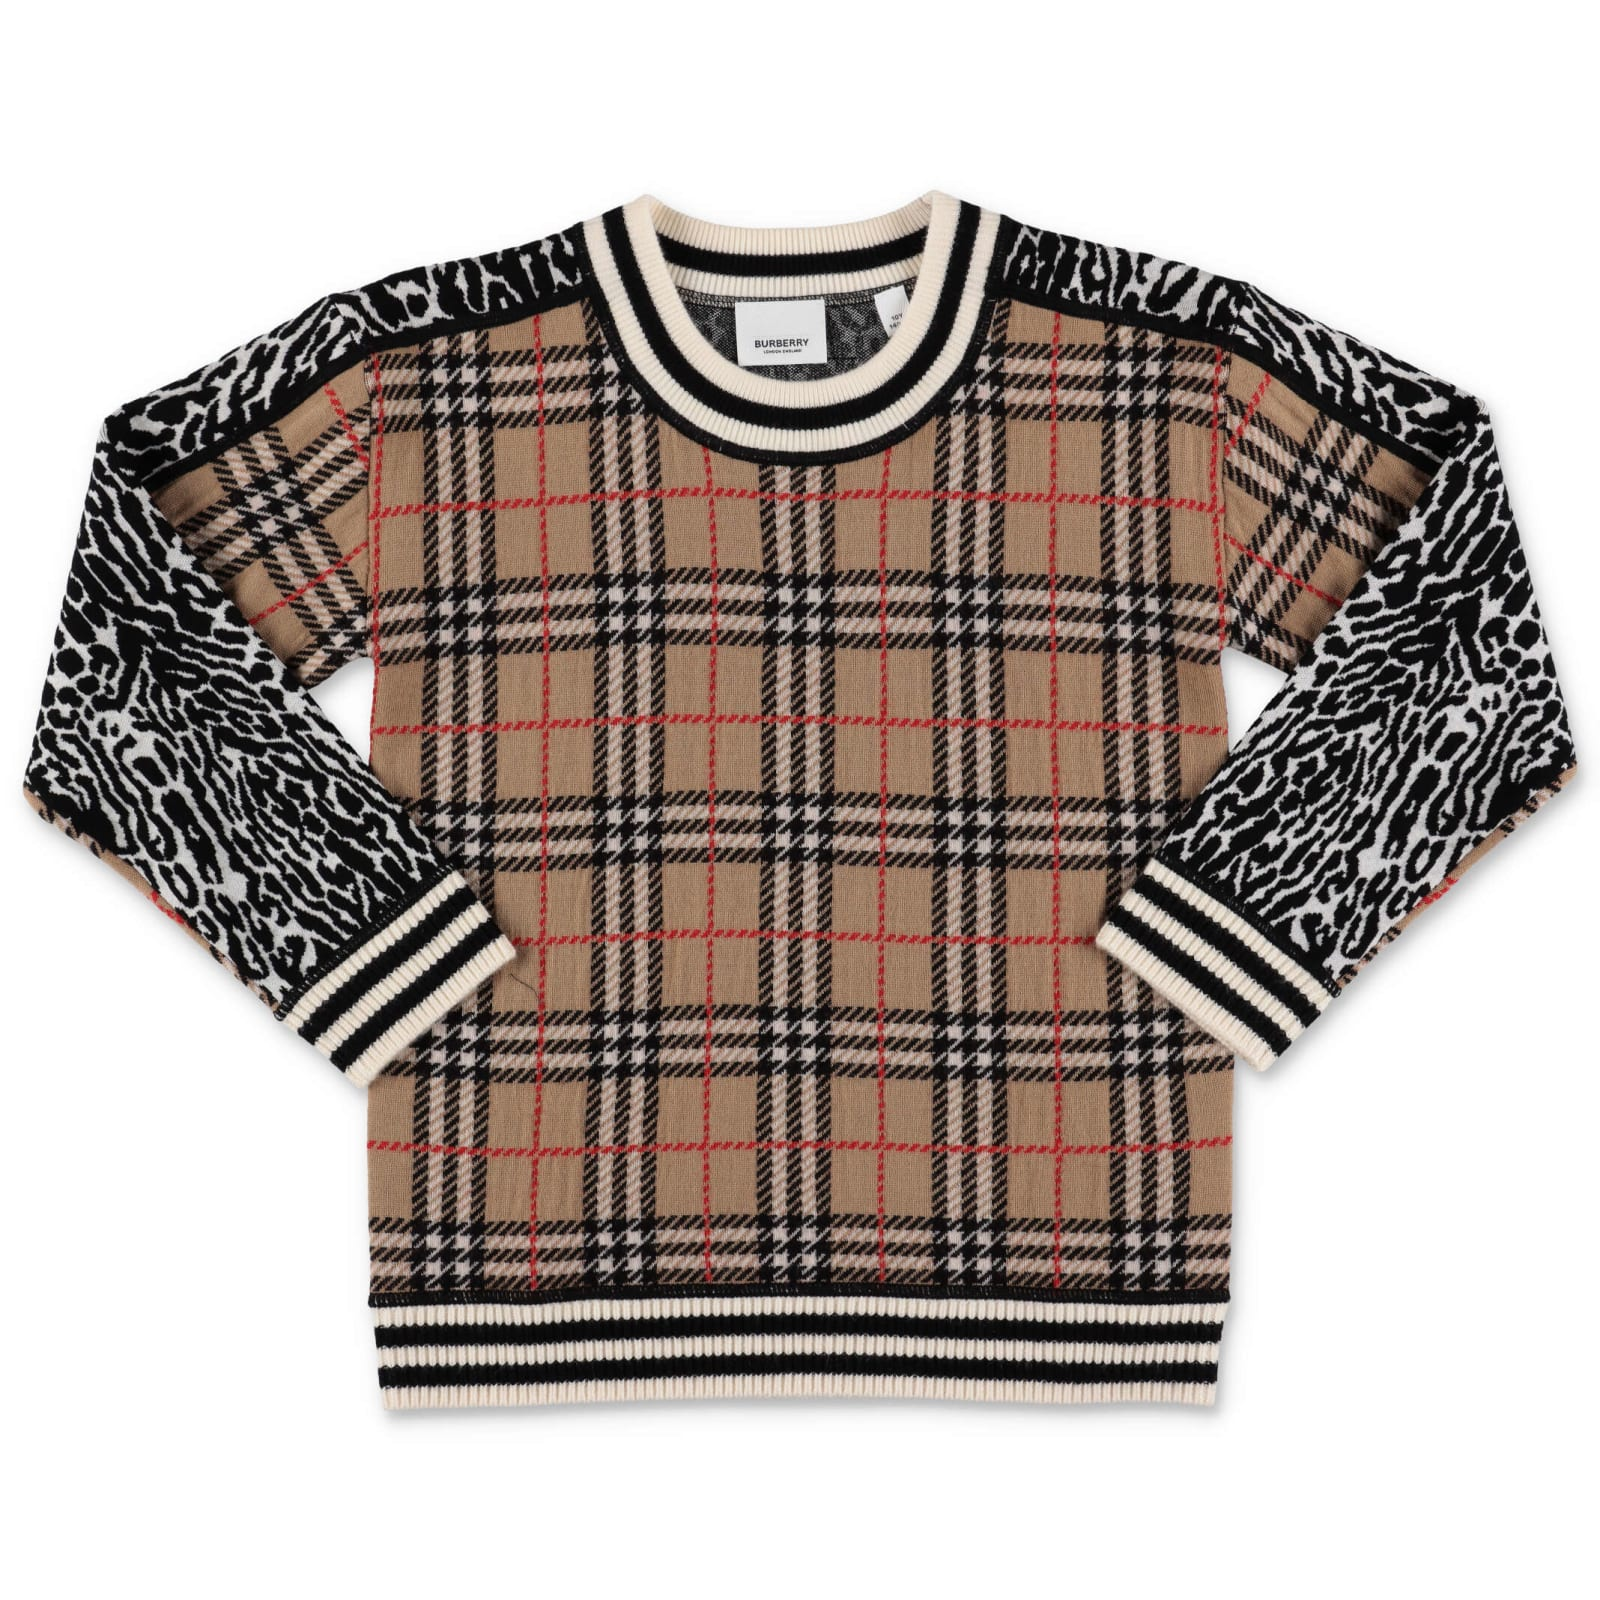 Burberry Kids' Sweater In Check